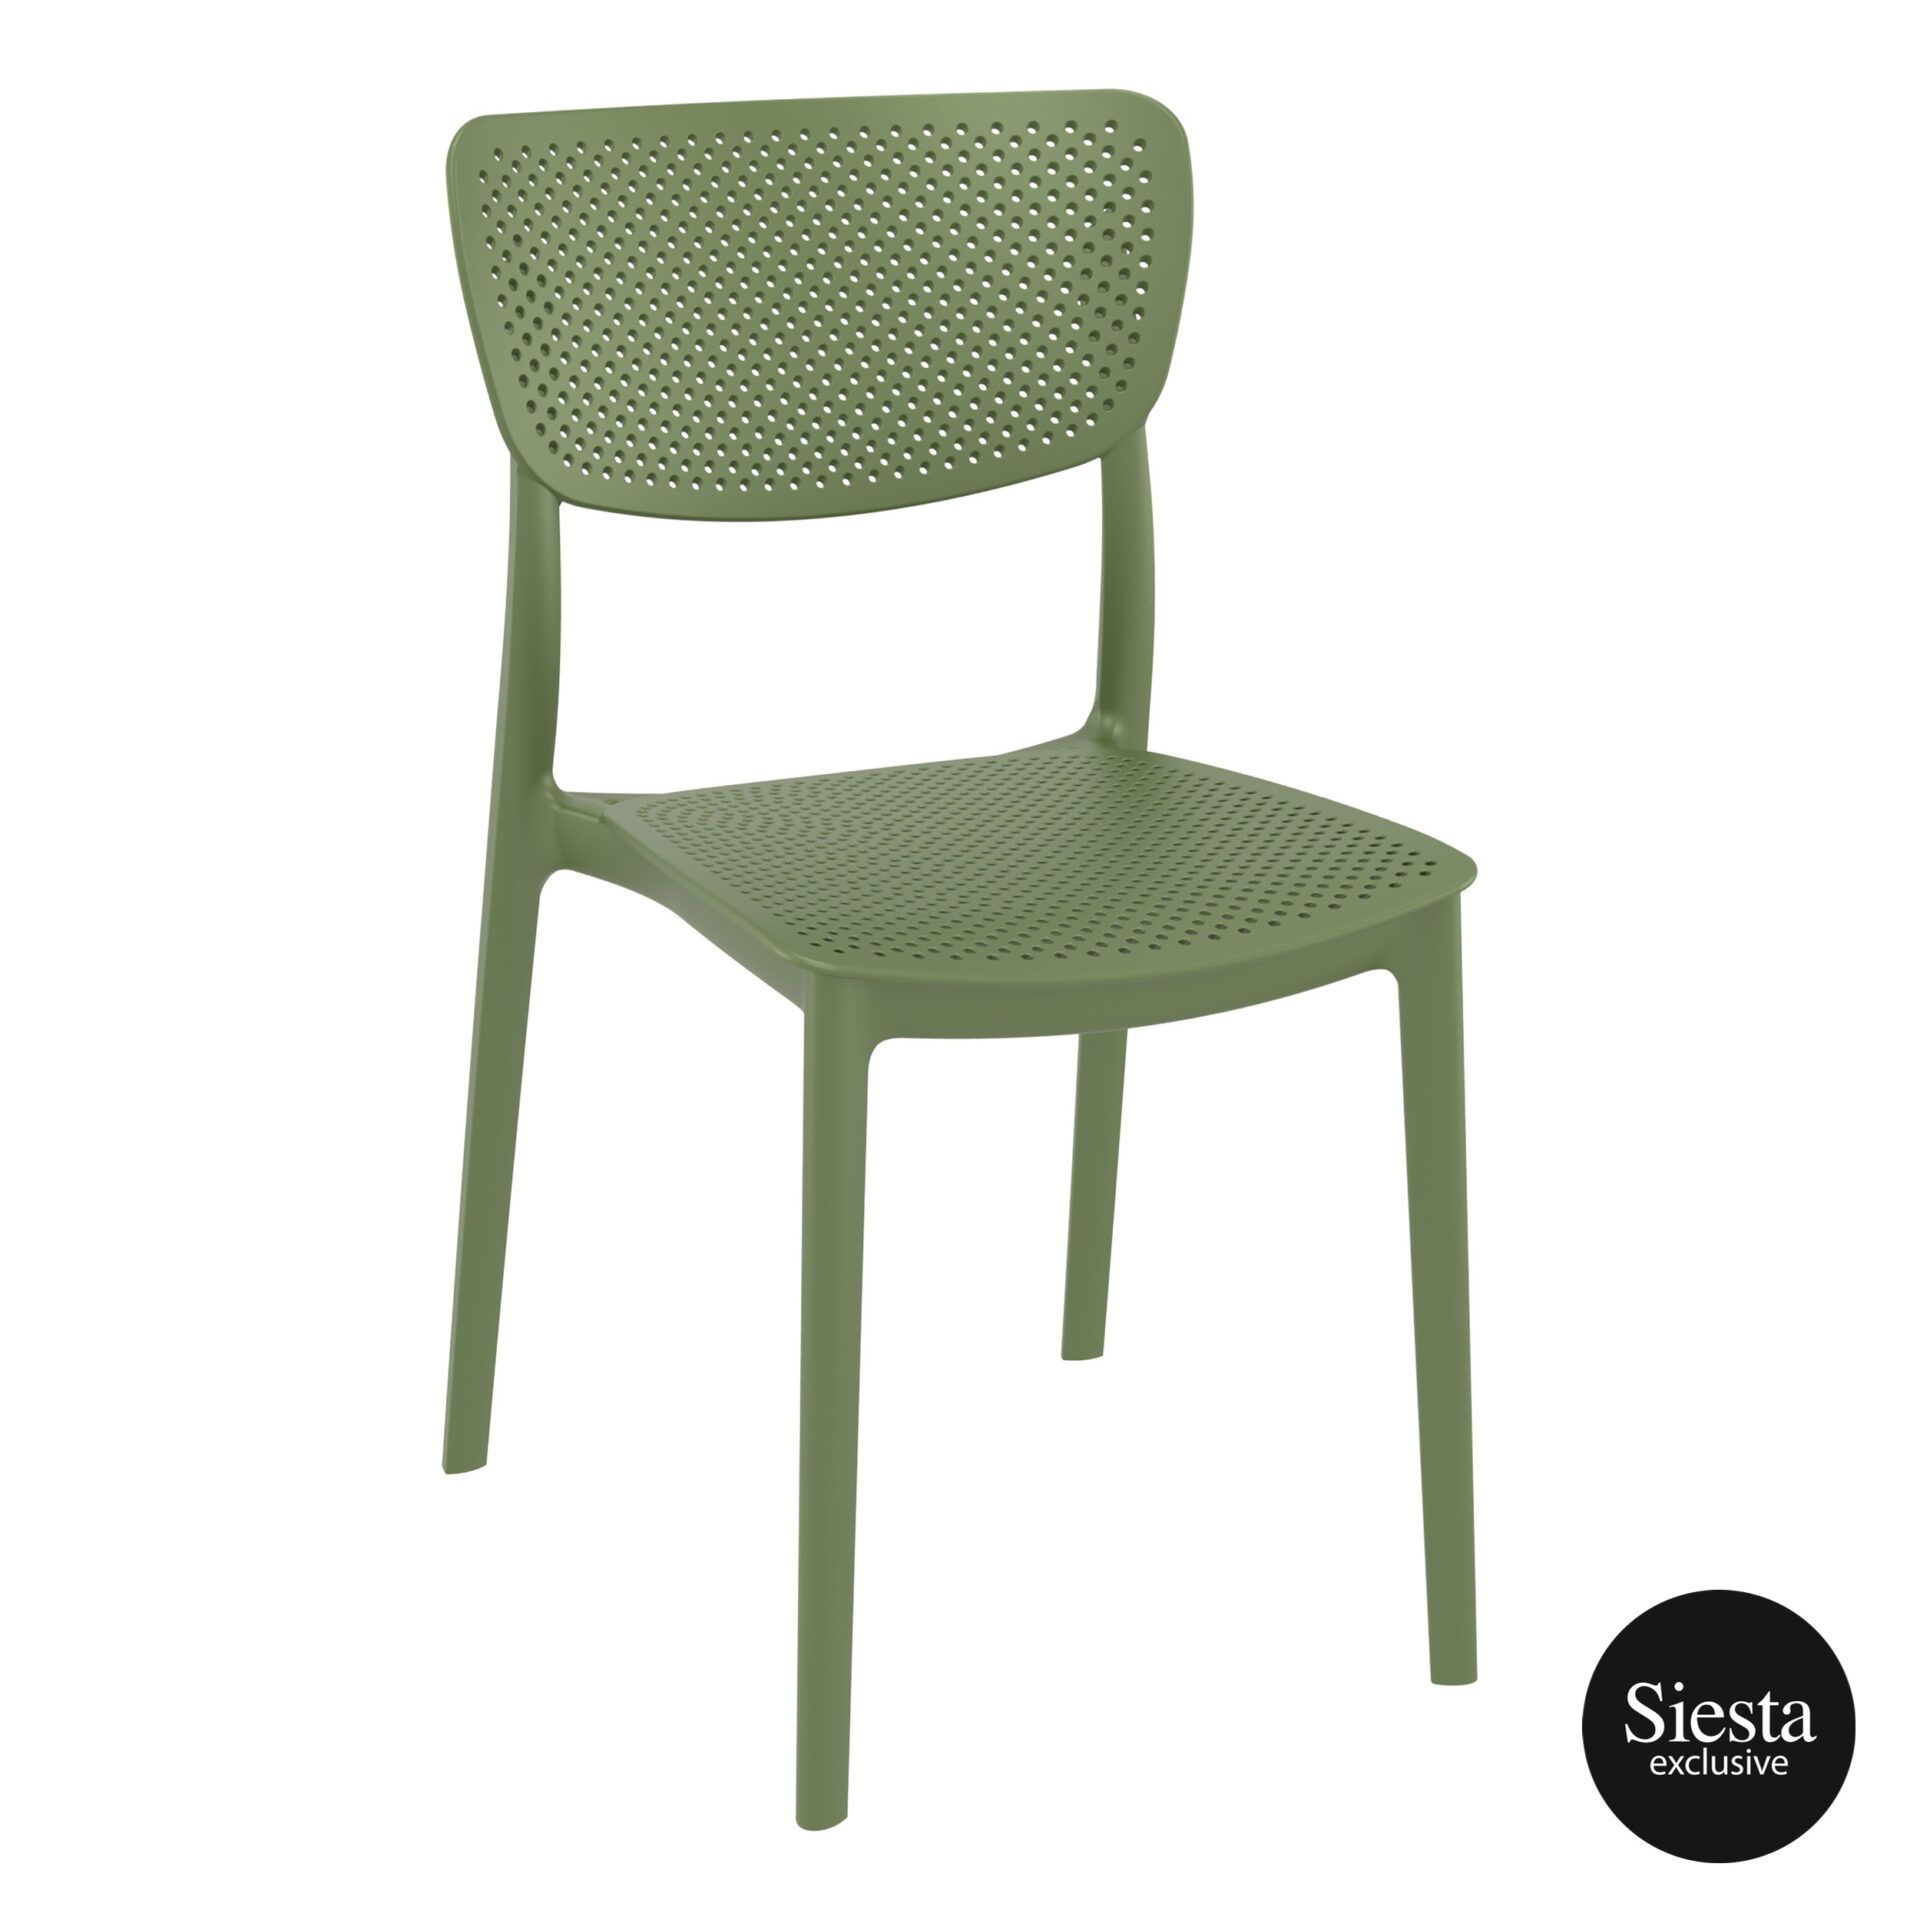 polypropylene hospitality seating lucy chair olive green front side 1